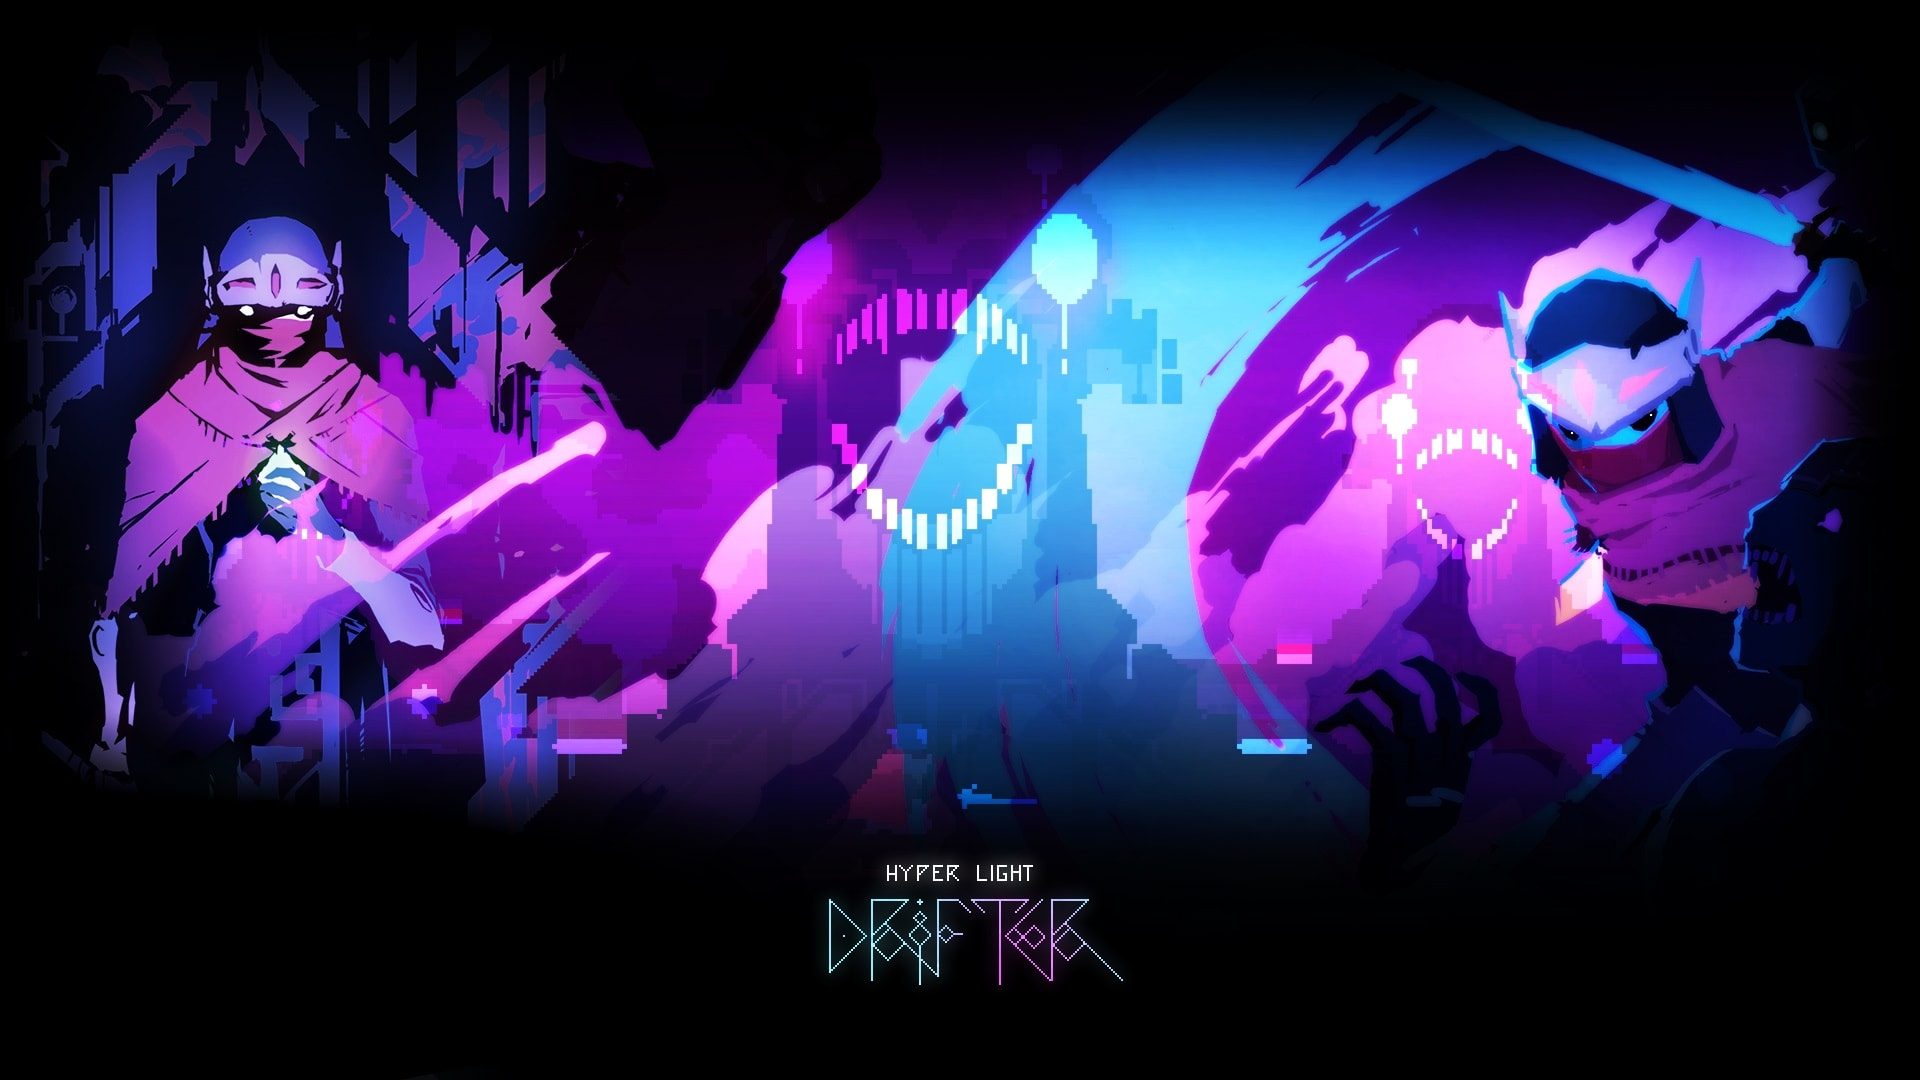 Hyper Light Drifter Wallpaper